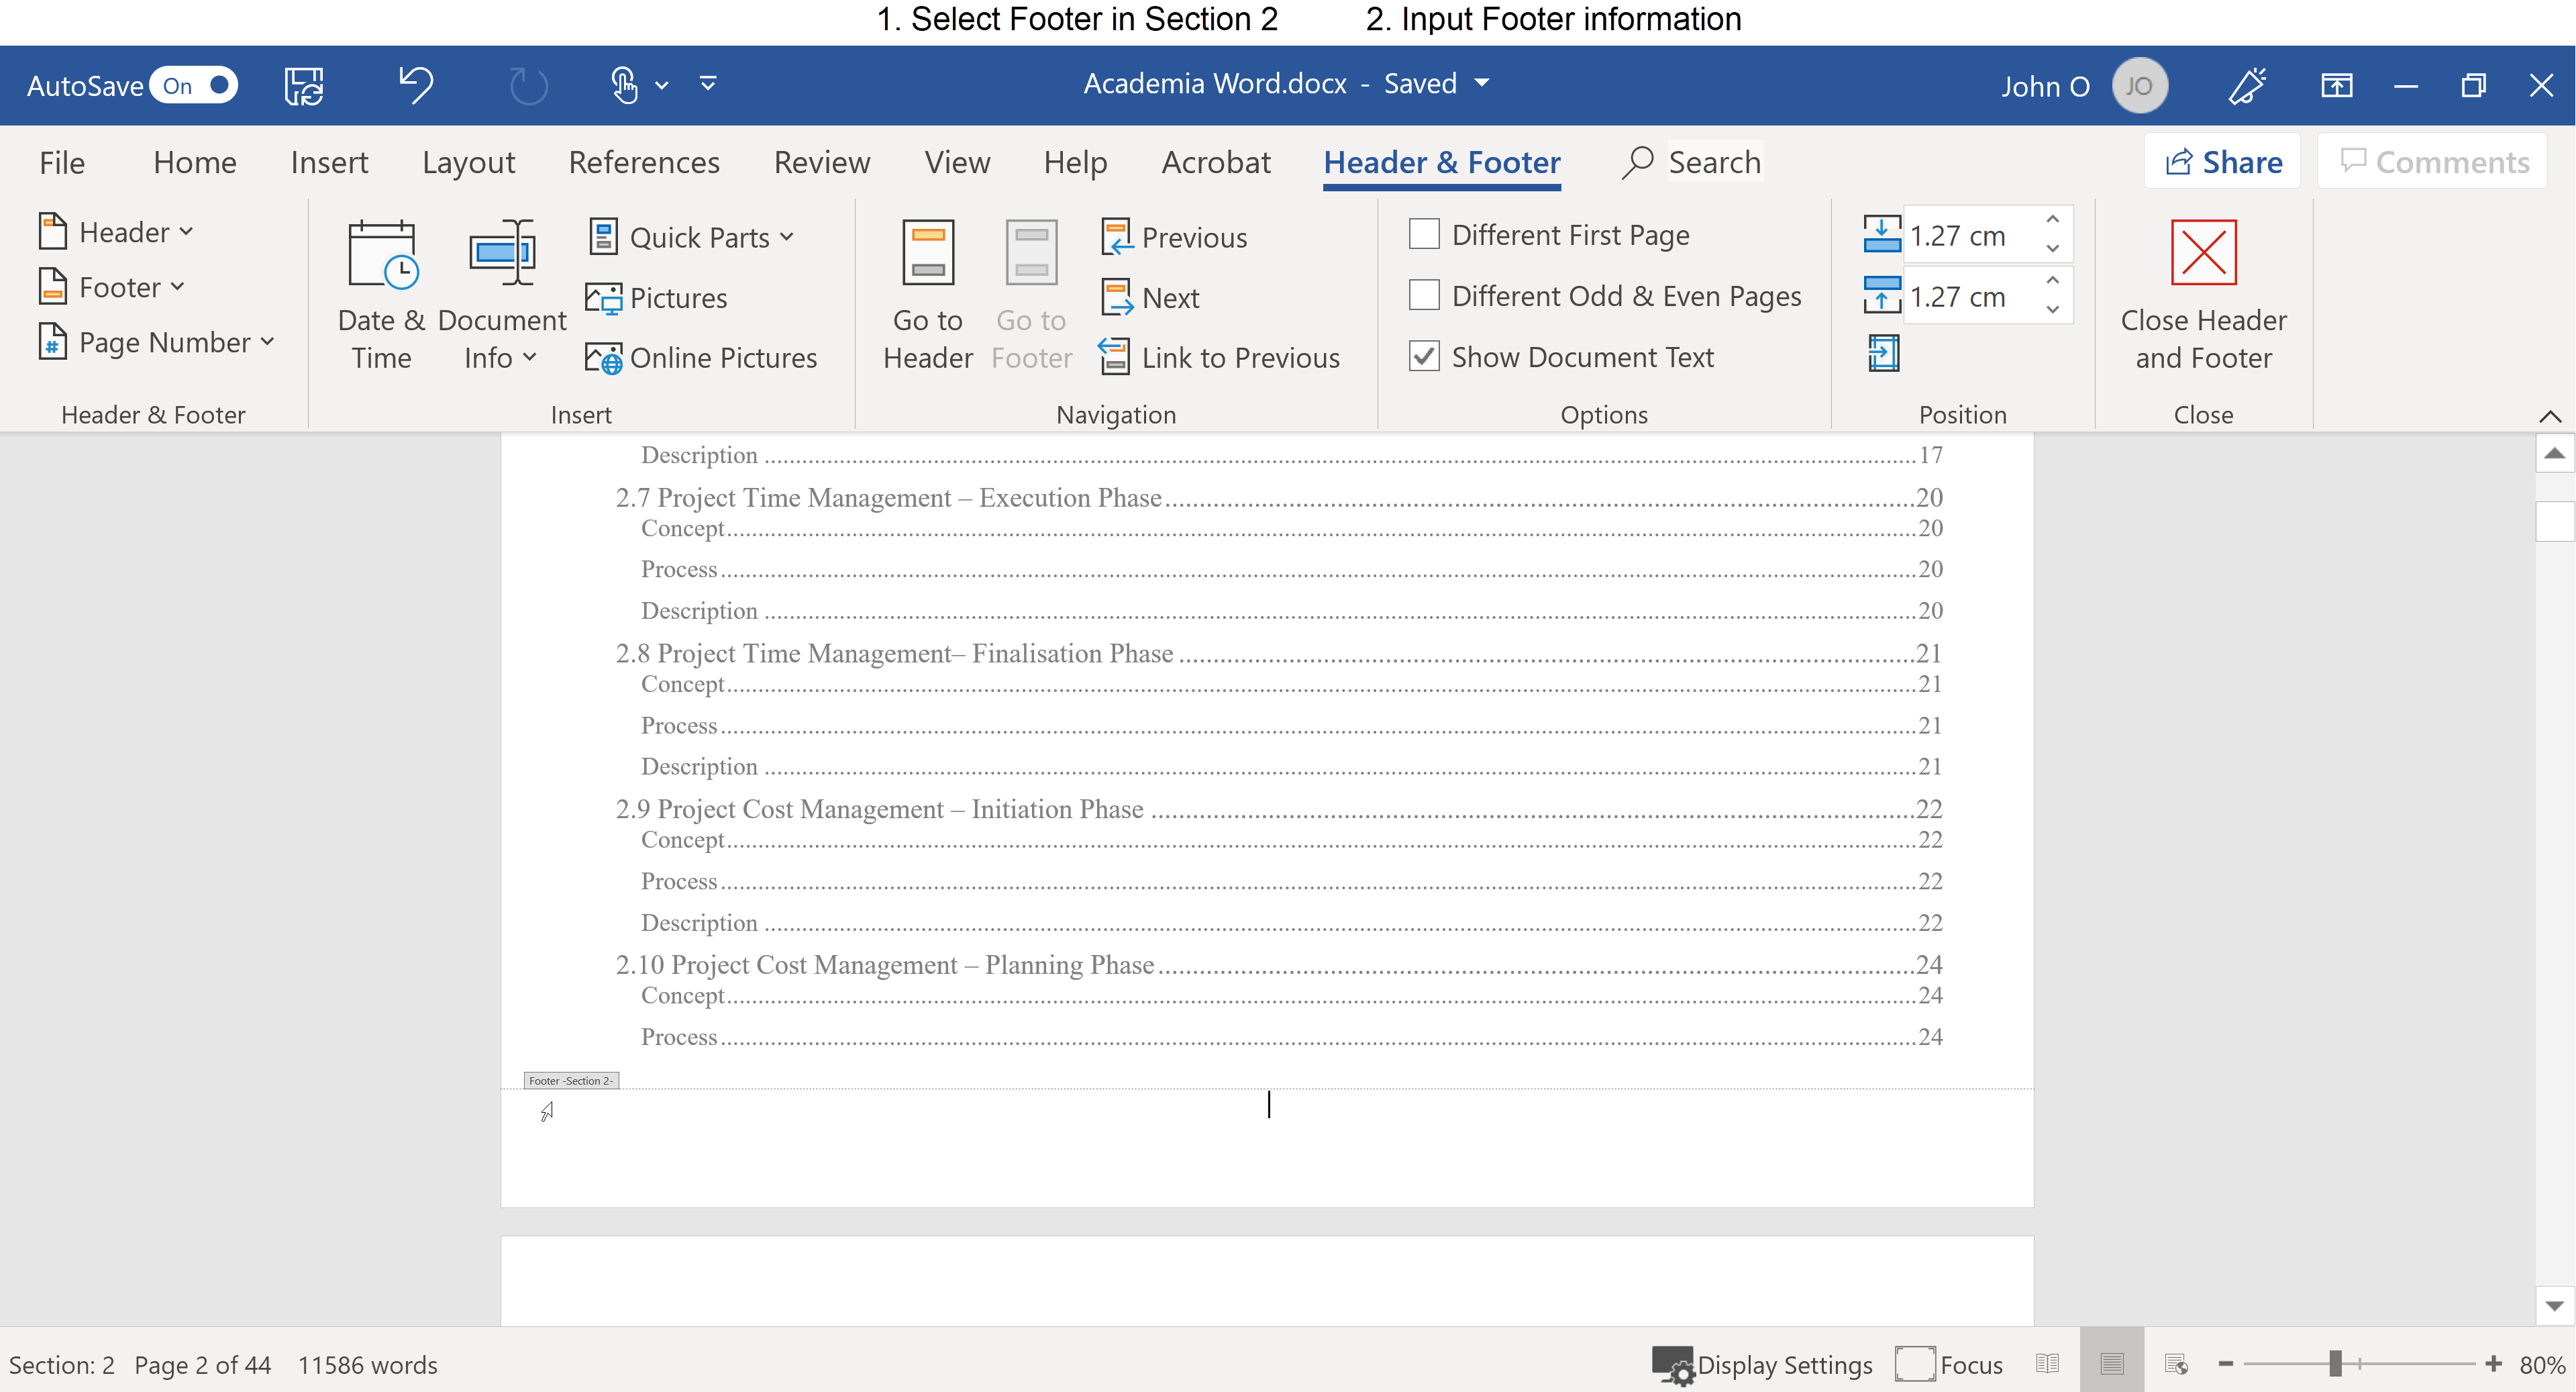 To add a footer to the Table of Contents pages (Section 2), select footer (double click in footer area) and enter footer details.